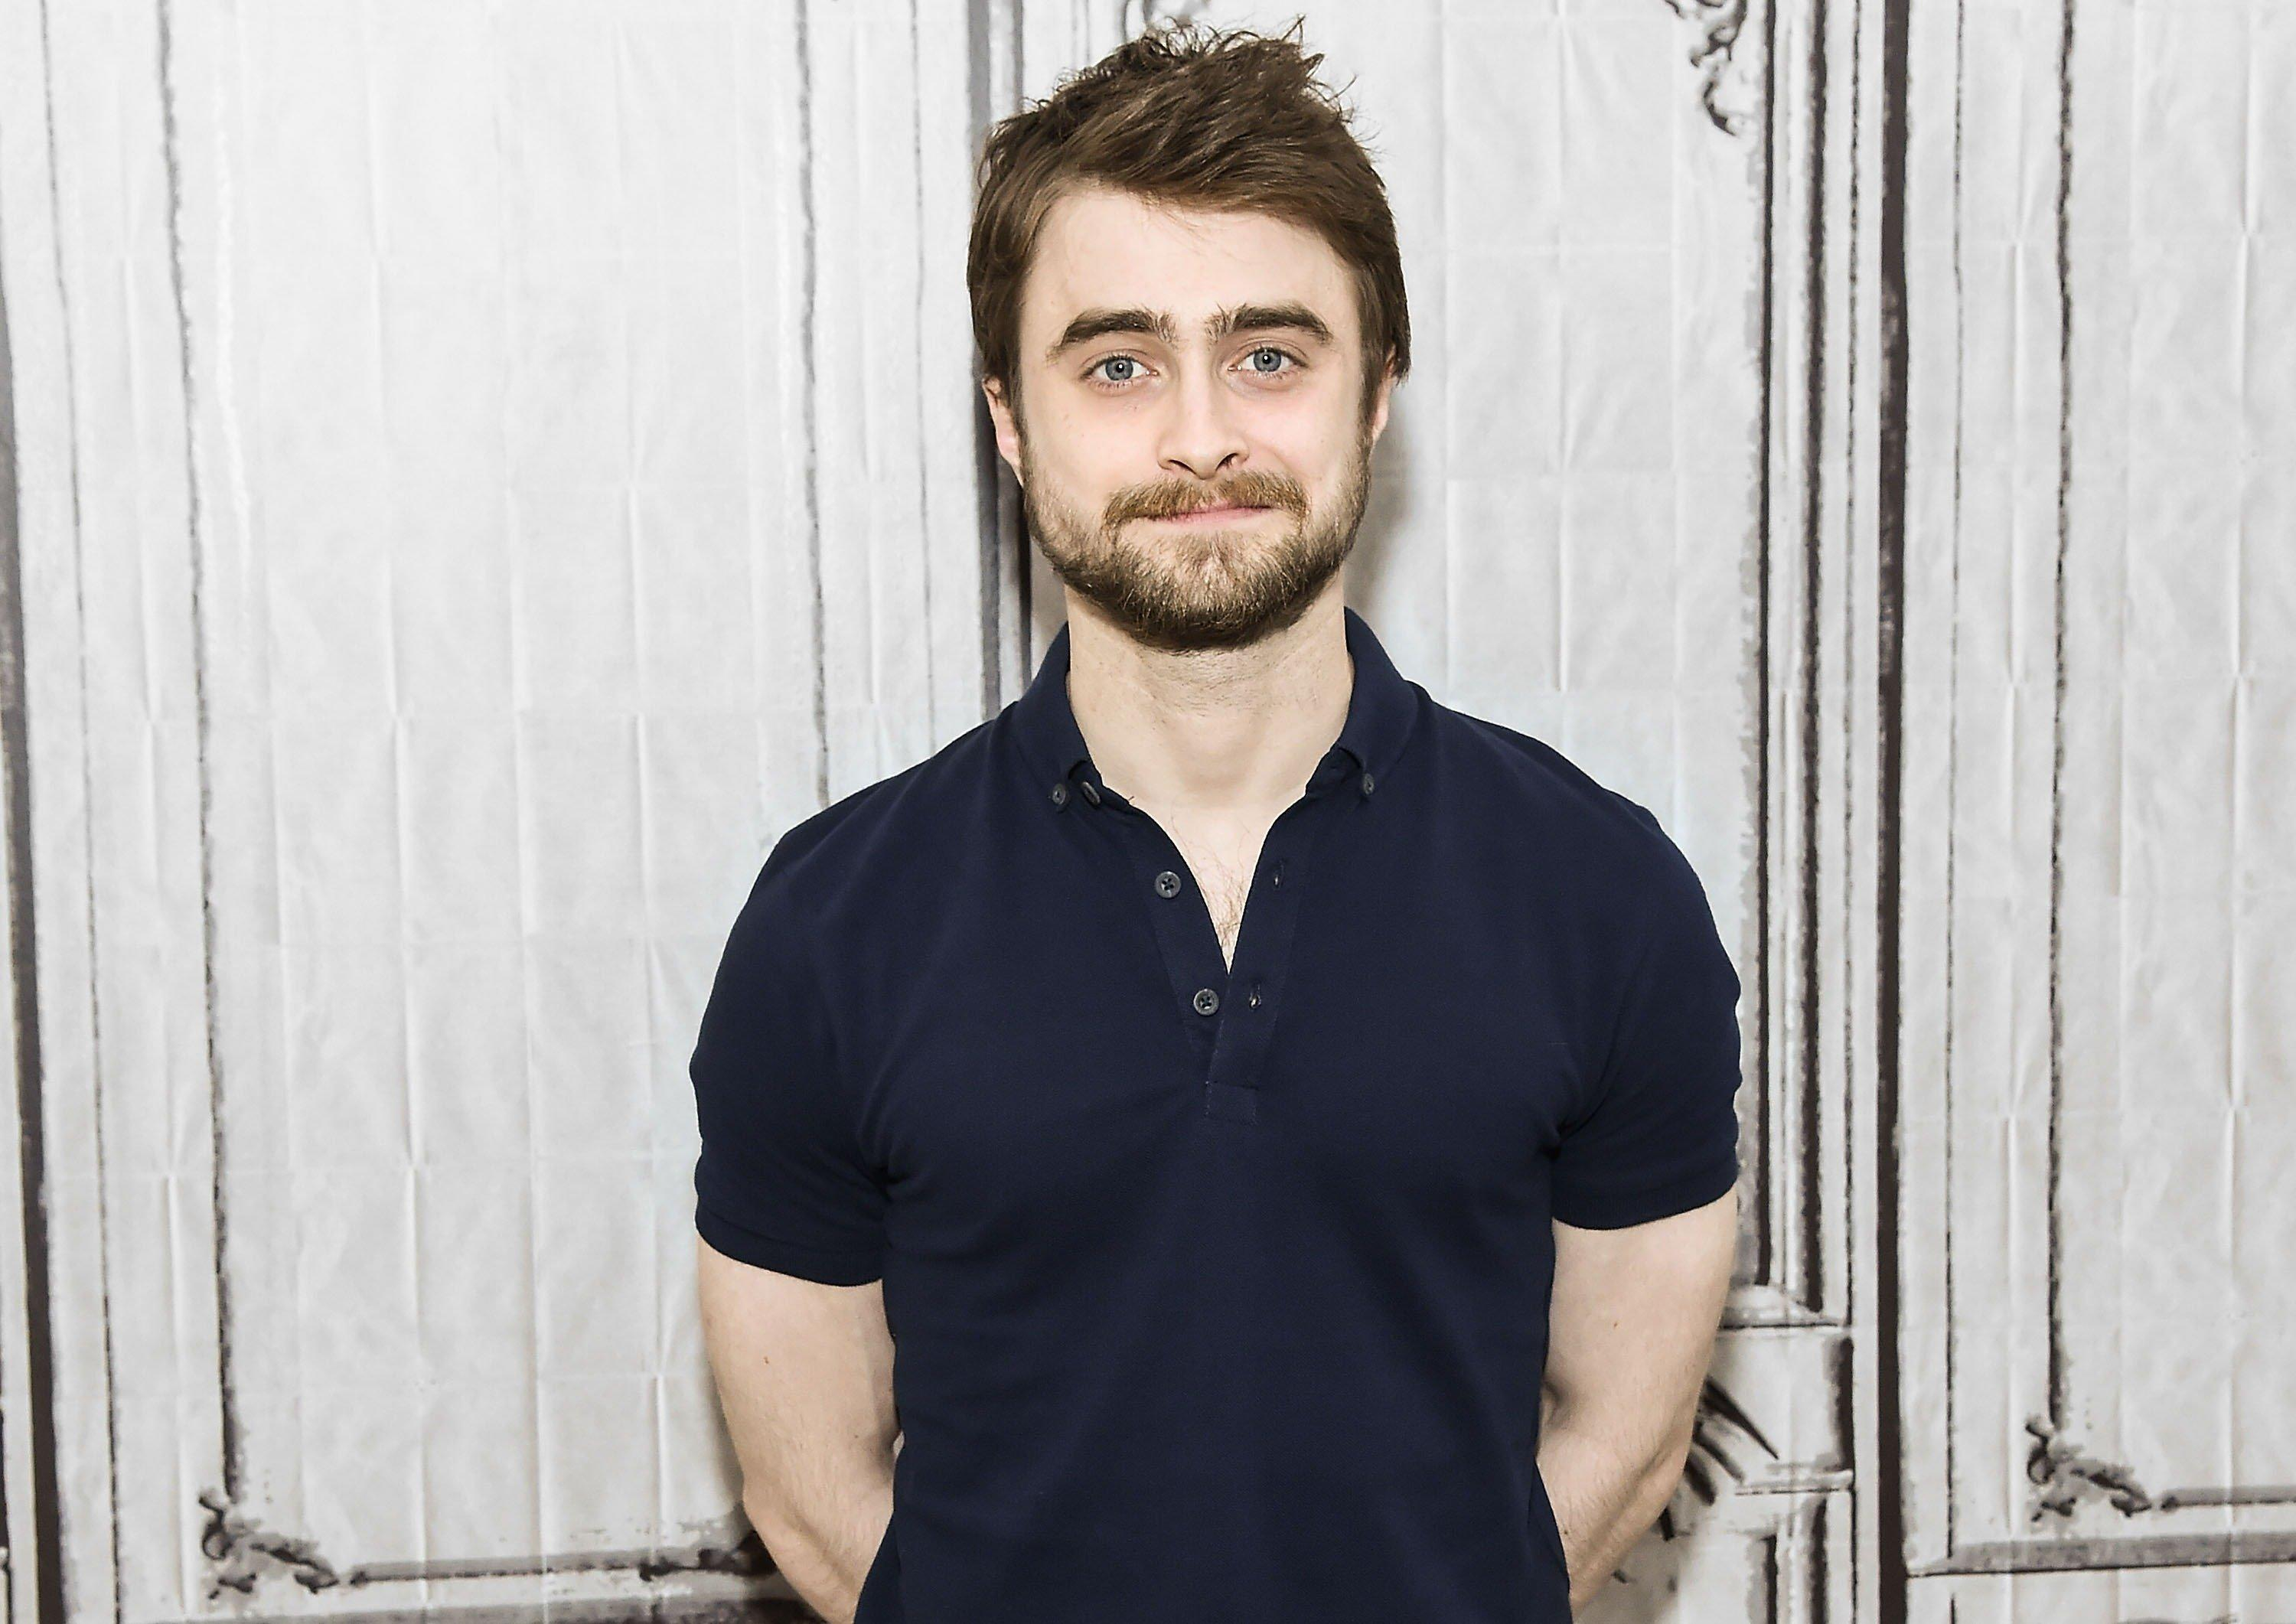 Daniel Radcliffe is currently shooting Guns Akimbo which according to the IMDB synopsis revolves around a man attempting to rescue his exgirlfriend